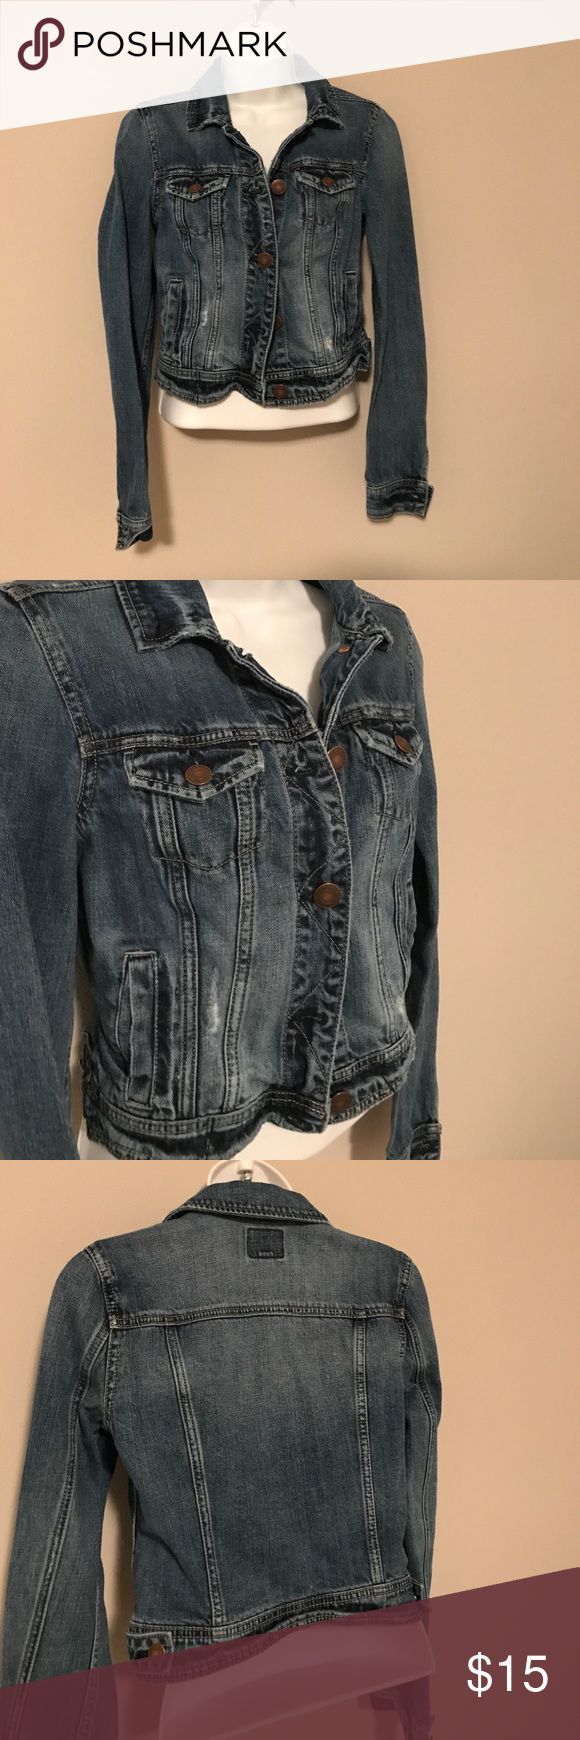 American Eagle jean jacket American Eagle blue jean jacket good used condition size xs. American Eagle Outfitters Jackets & Coats Jean Jackets